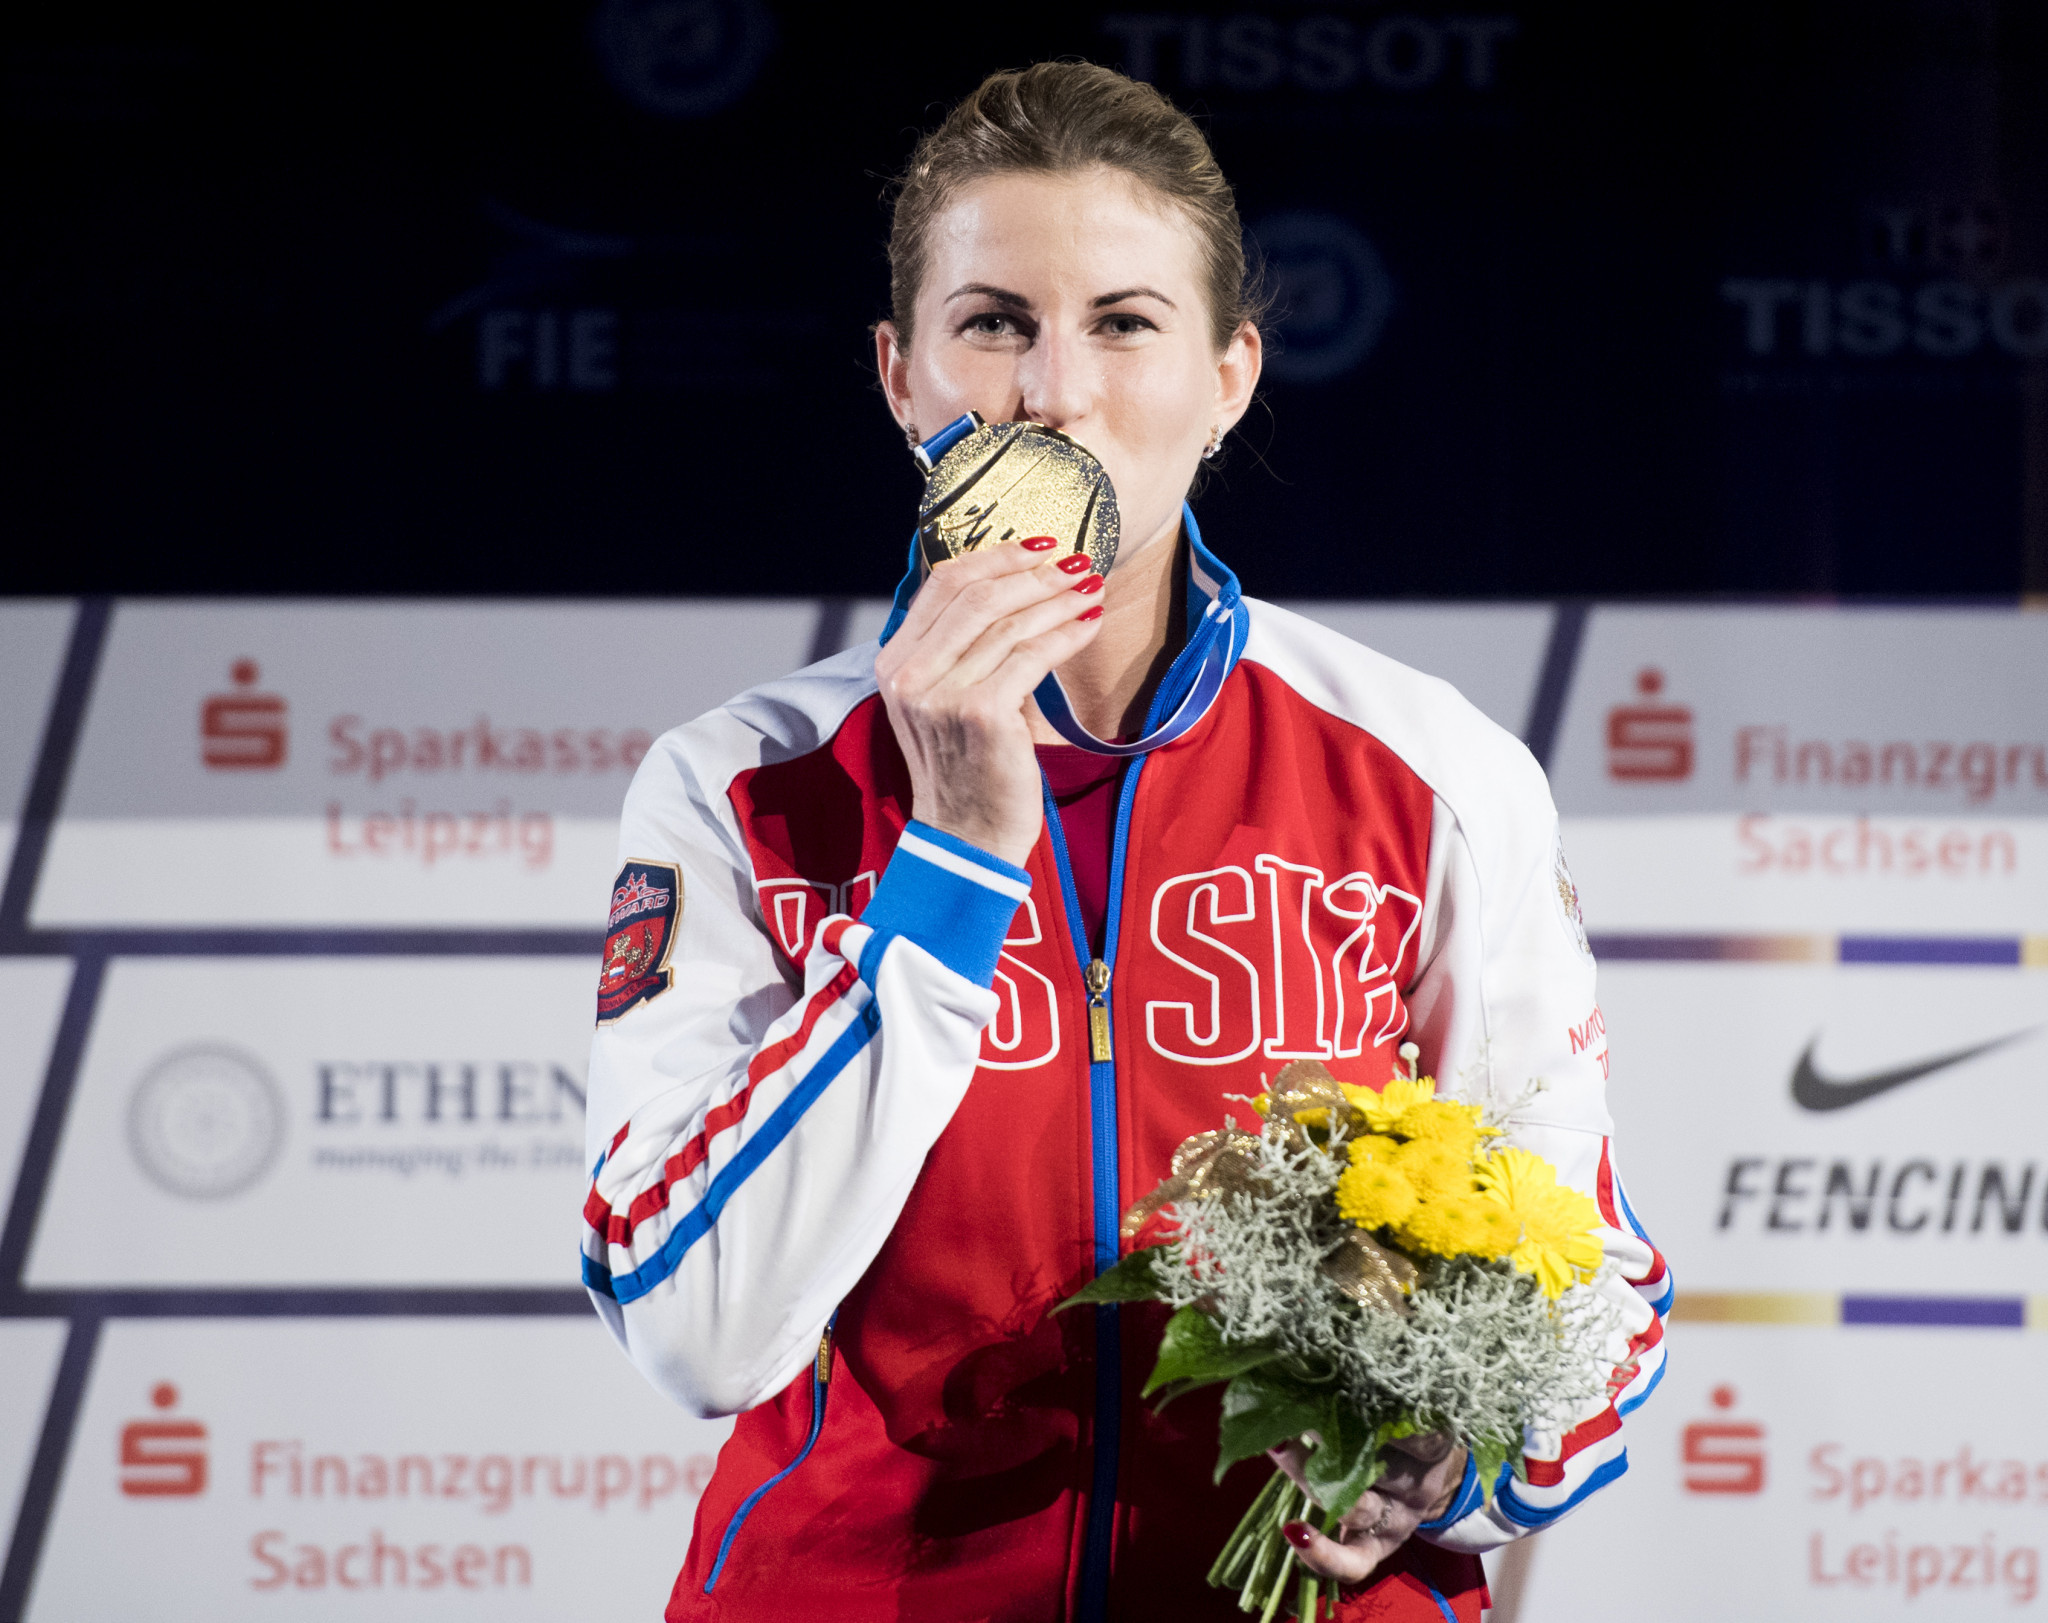 Kruse and Deriglazova set to defend FIE Foil Grand Prix titles in Shanghai